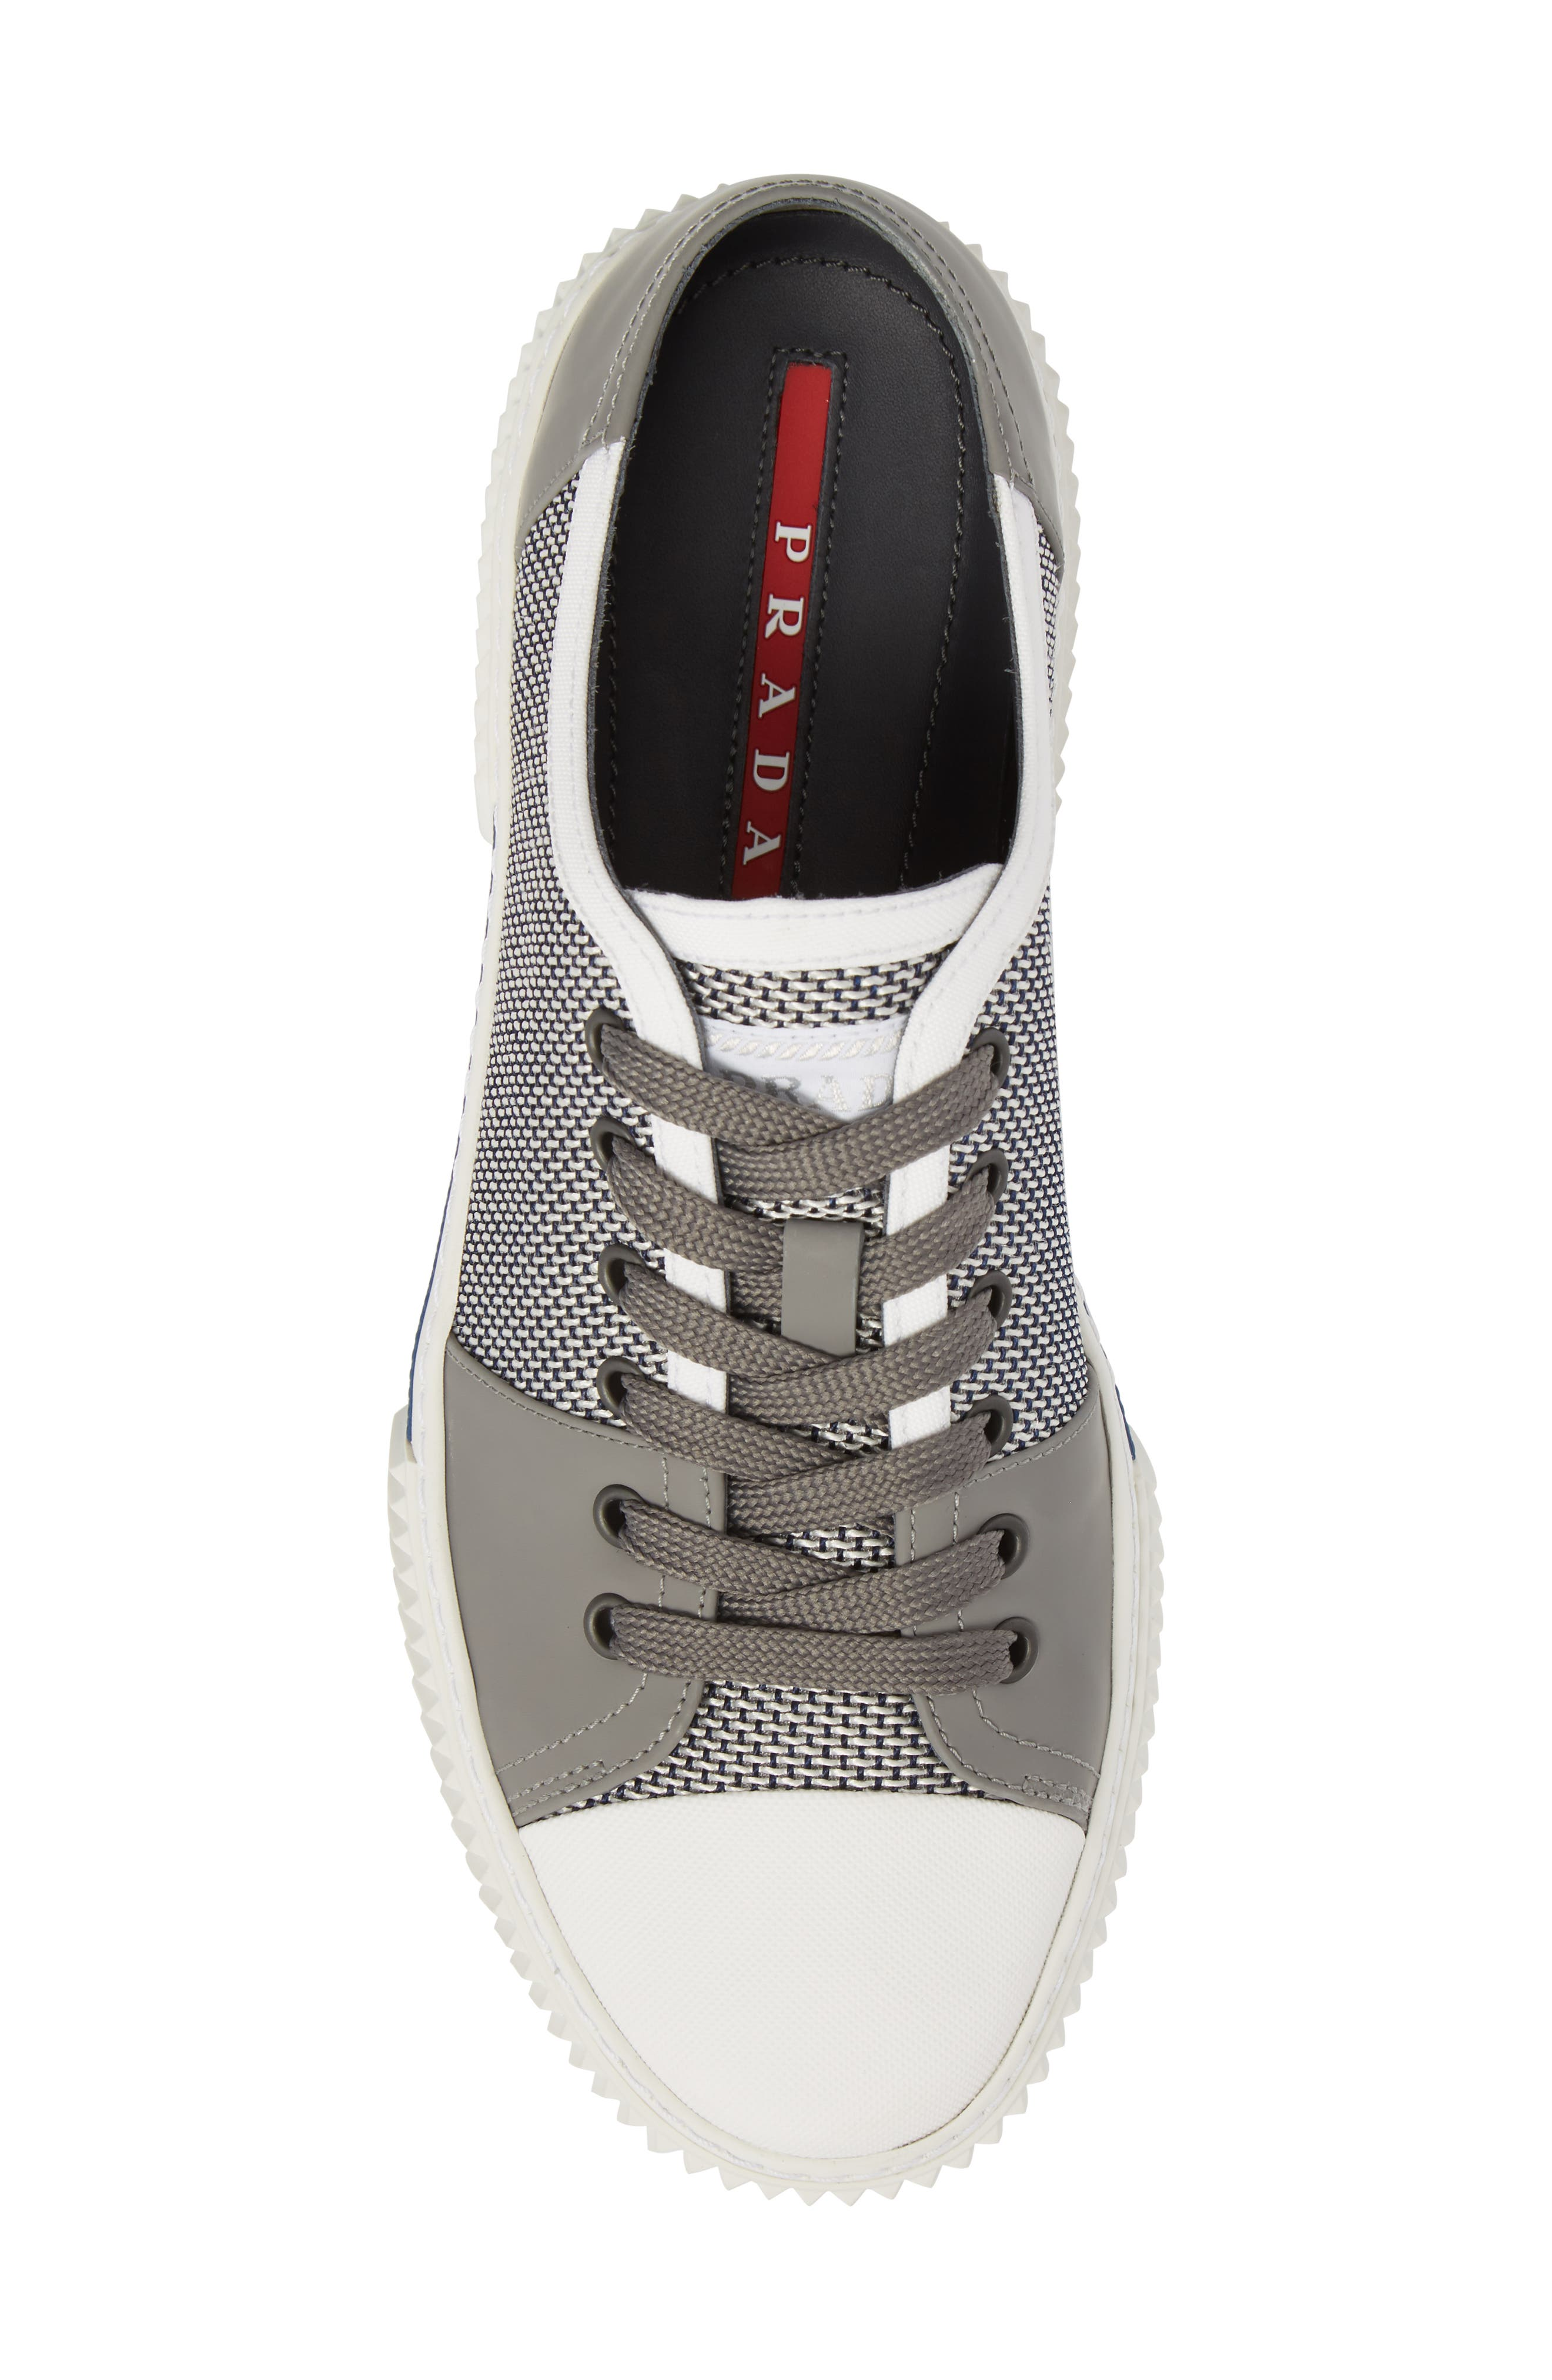 Linea Rossa Low-Top Sneaker,                             Alternate thumbnail 5, color,                             122